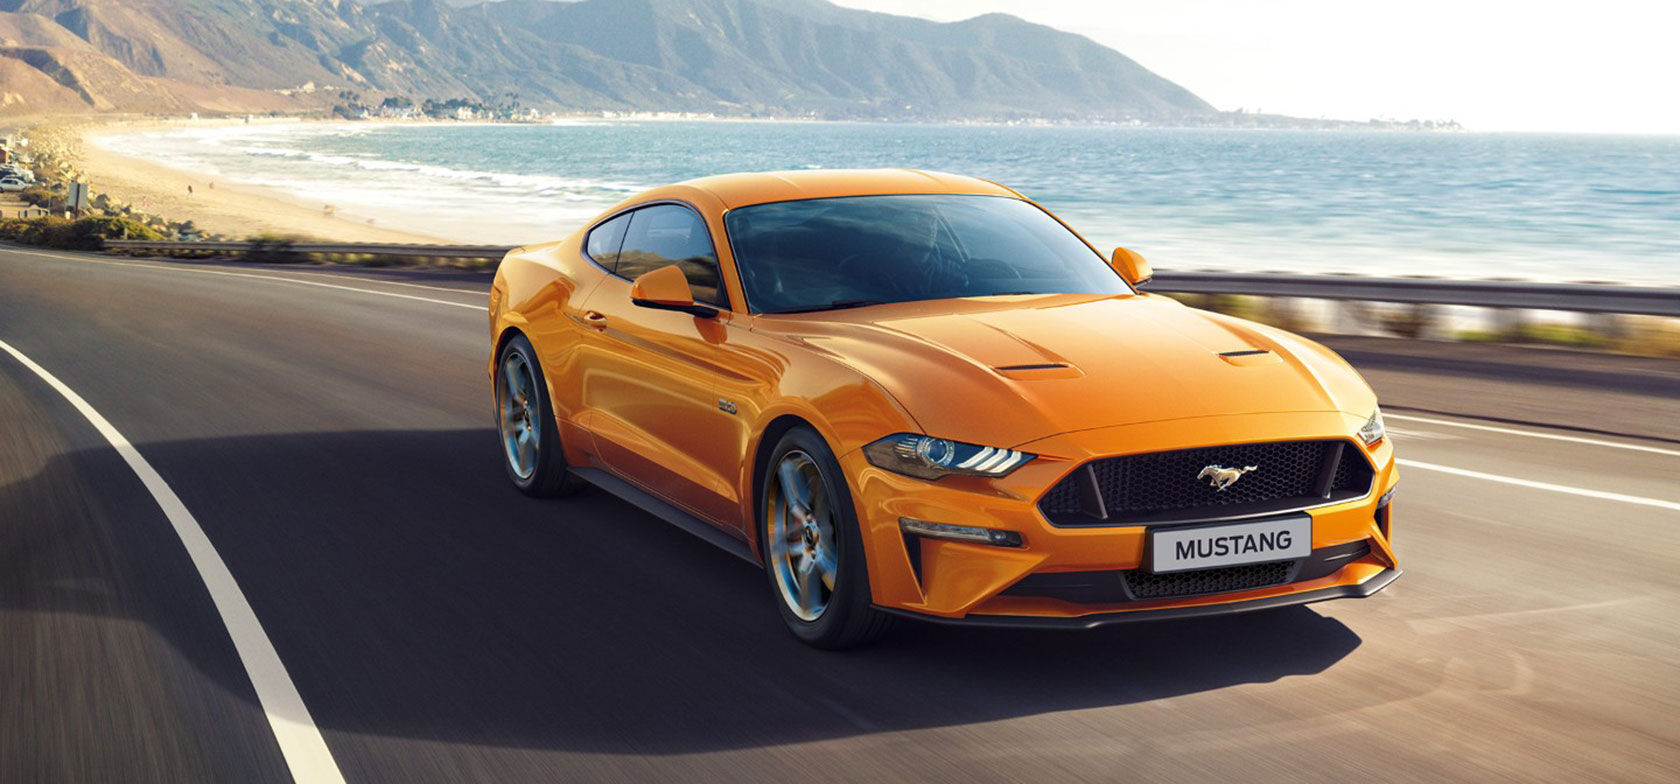 Ford Com Mustang >> Ford Mustang Autokeskus